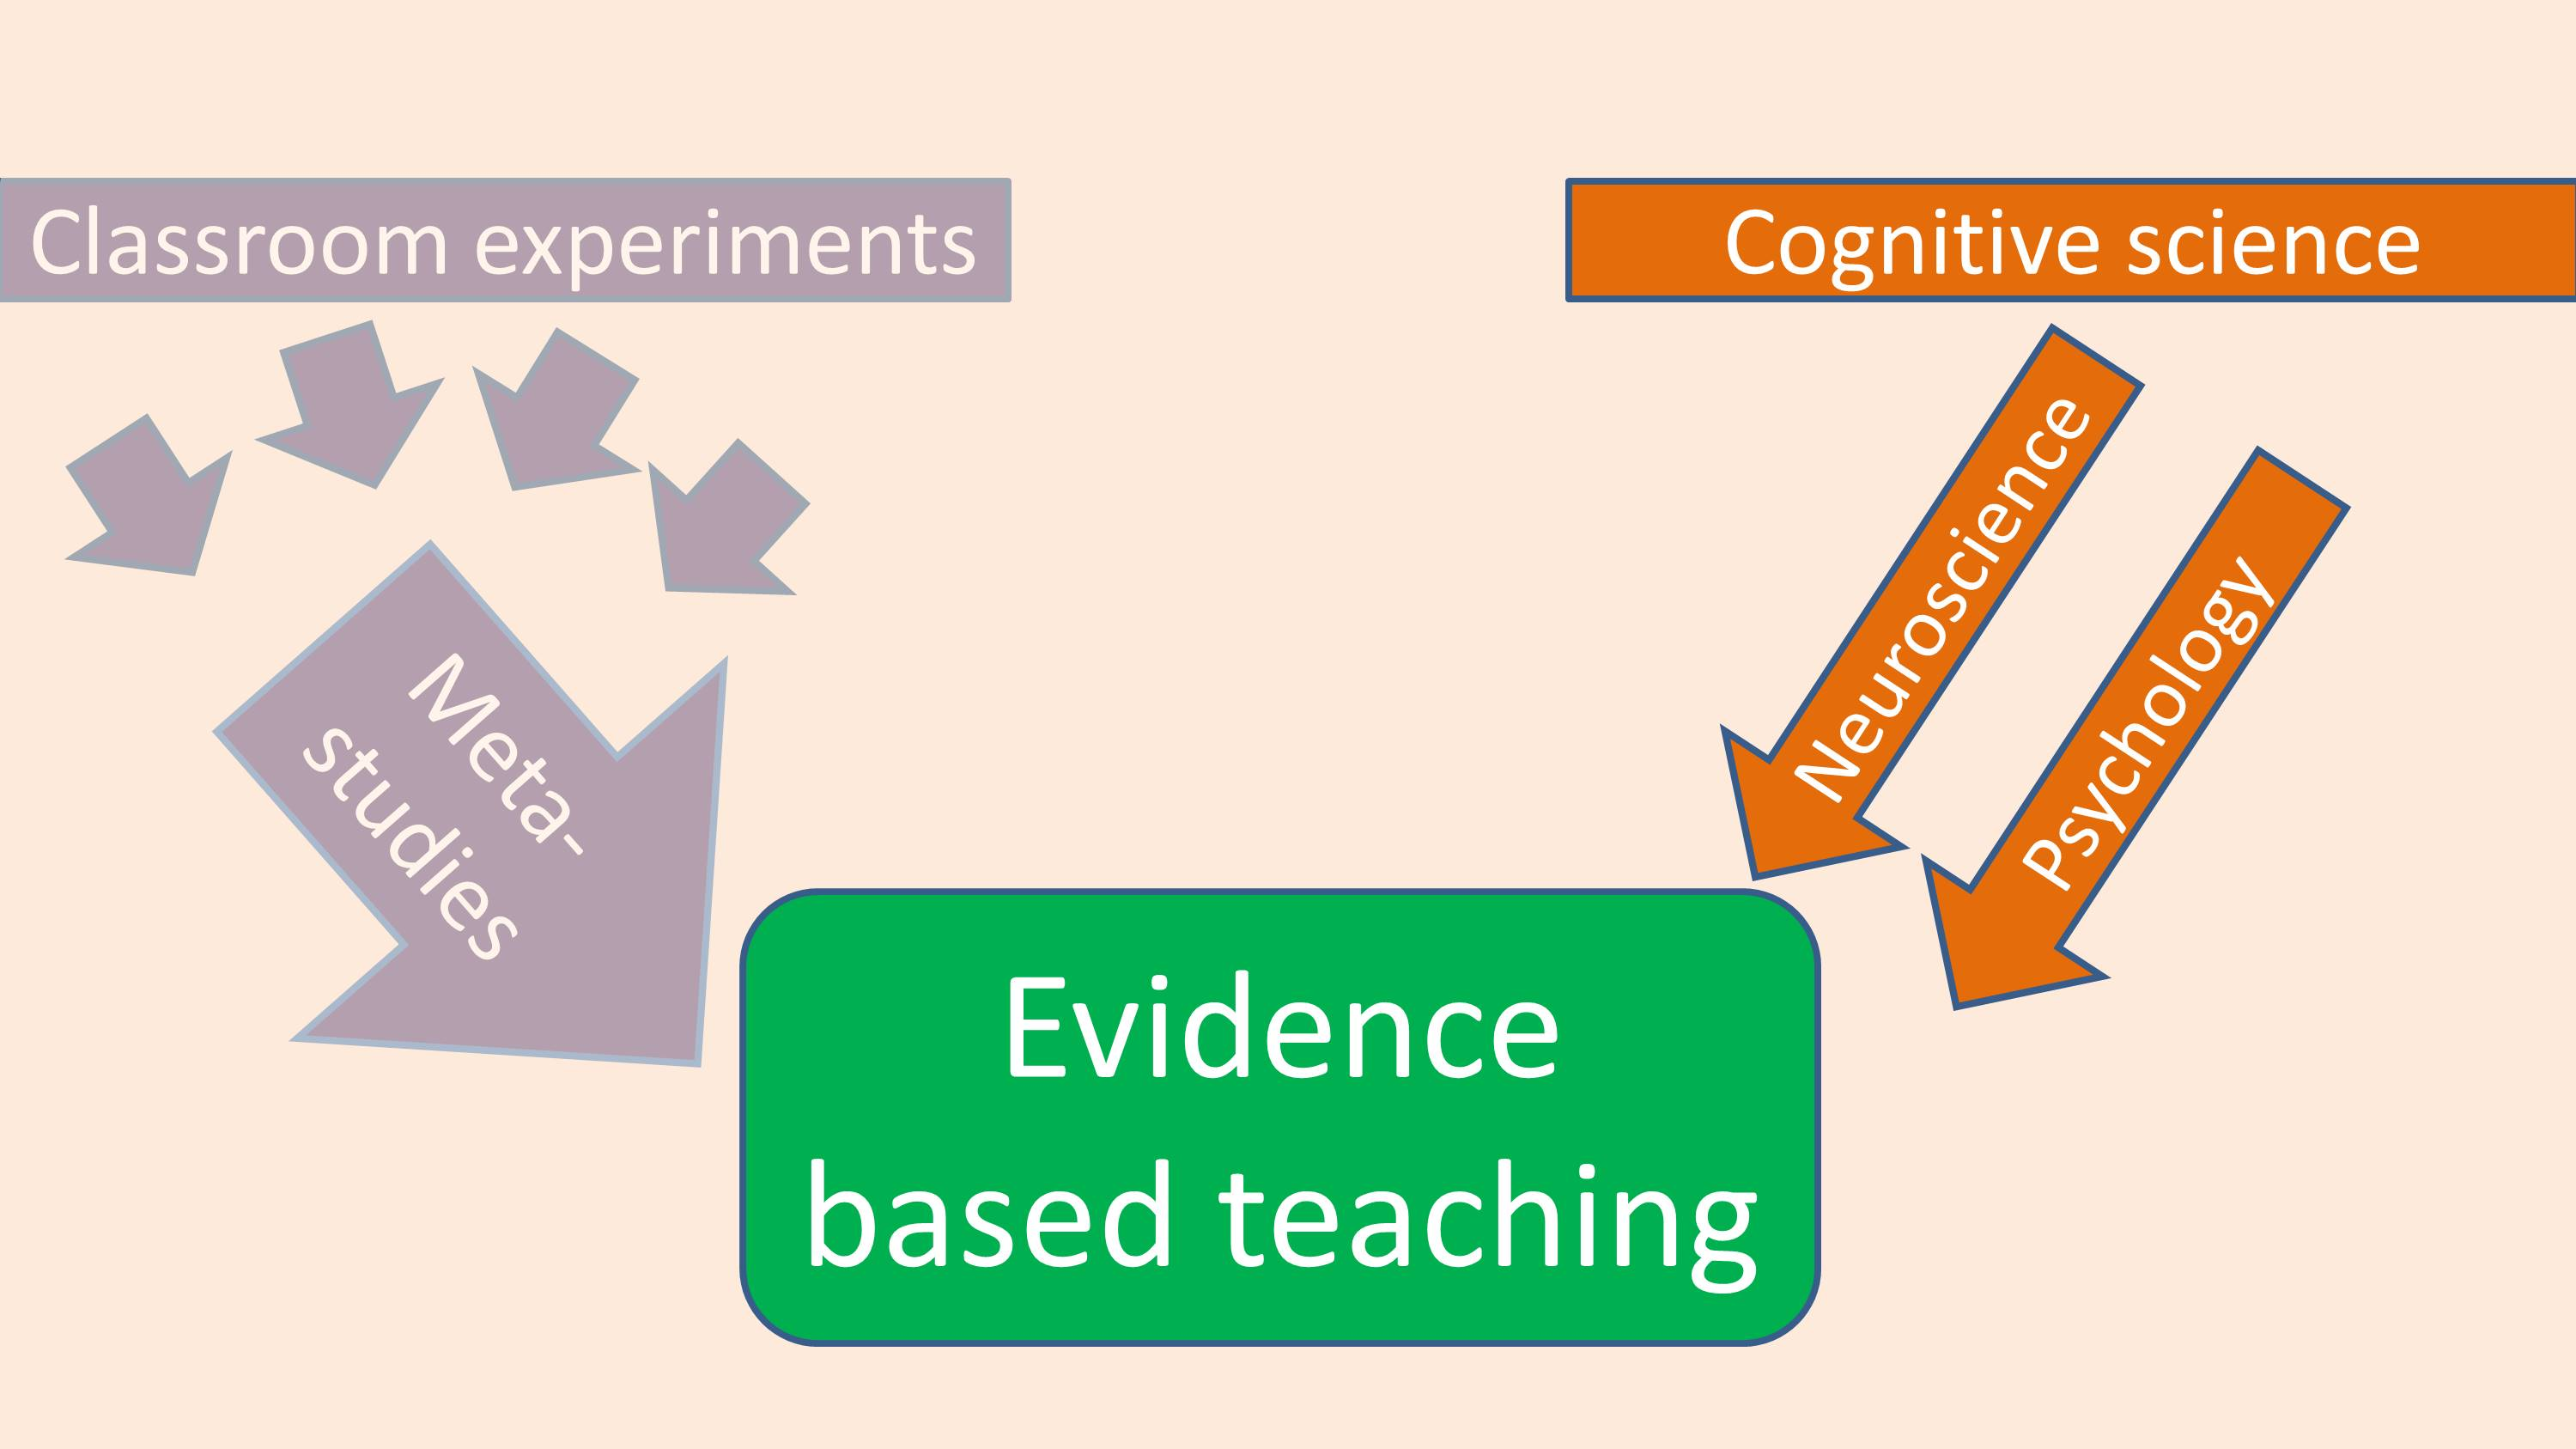 A diagram showing how cognitive science evidence feeds into evidence-based teaching